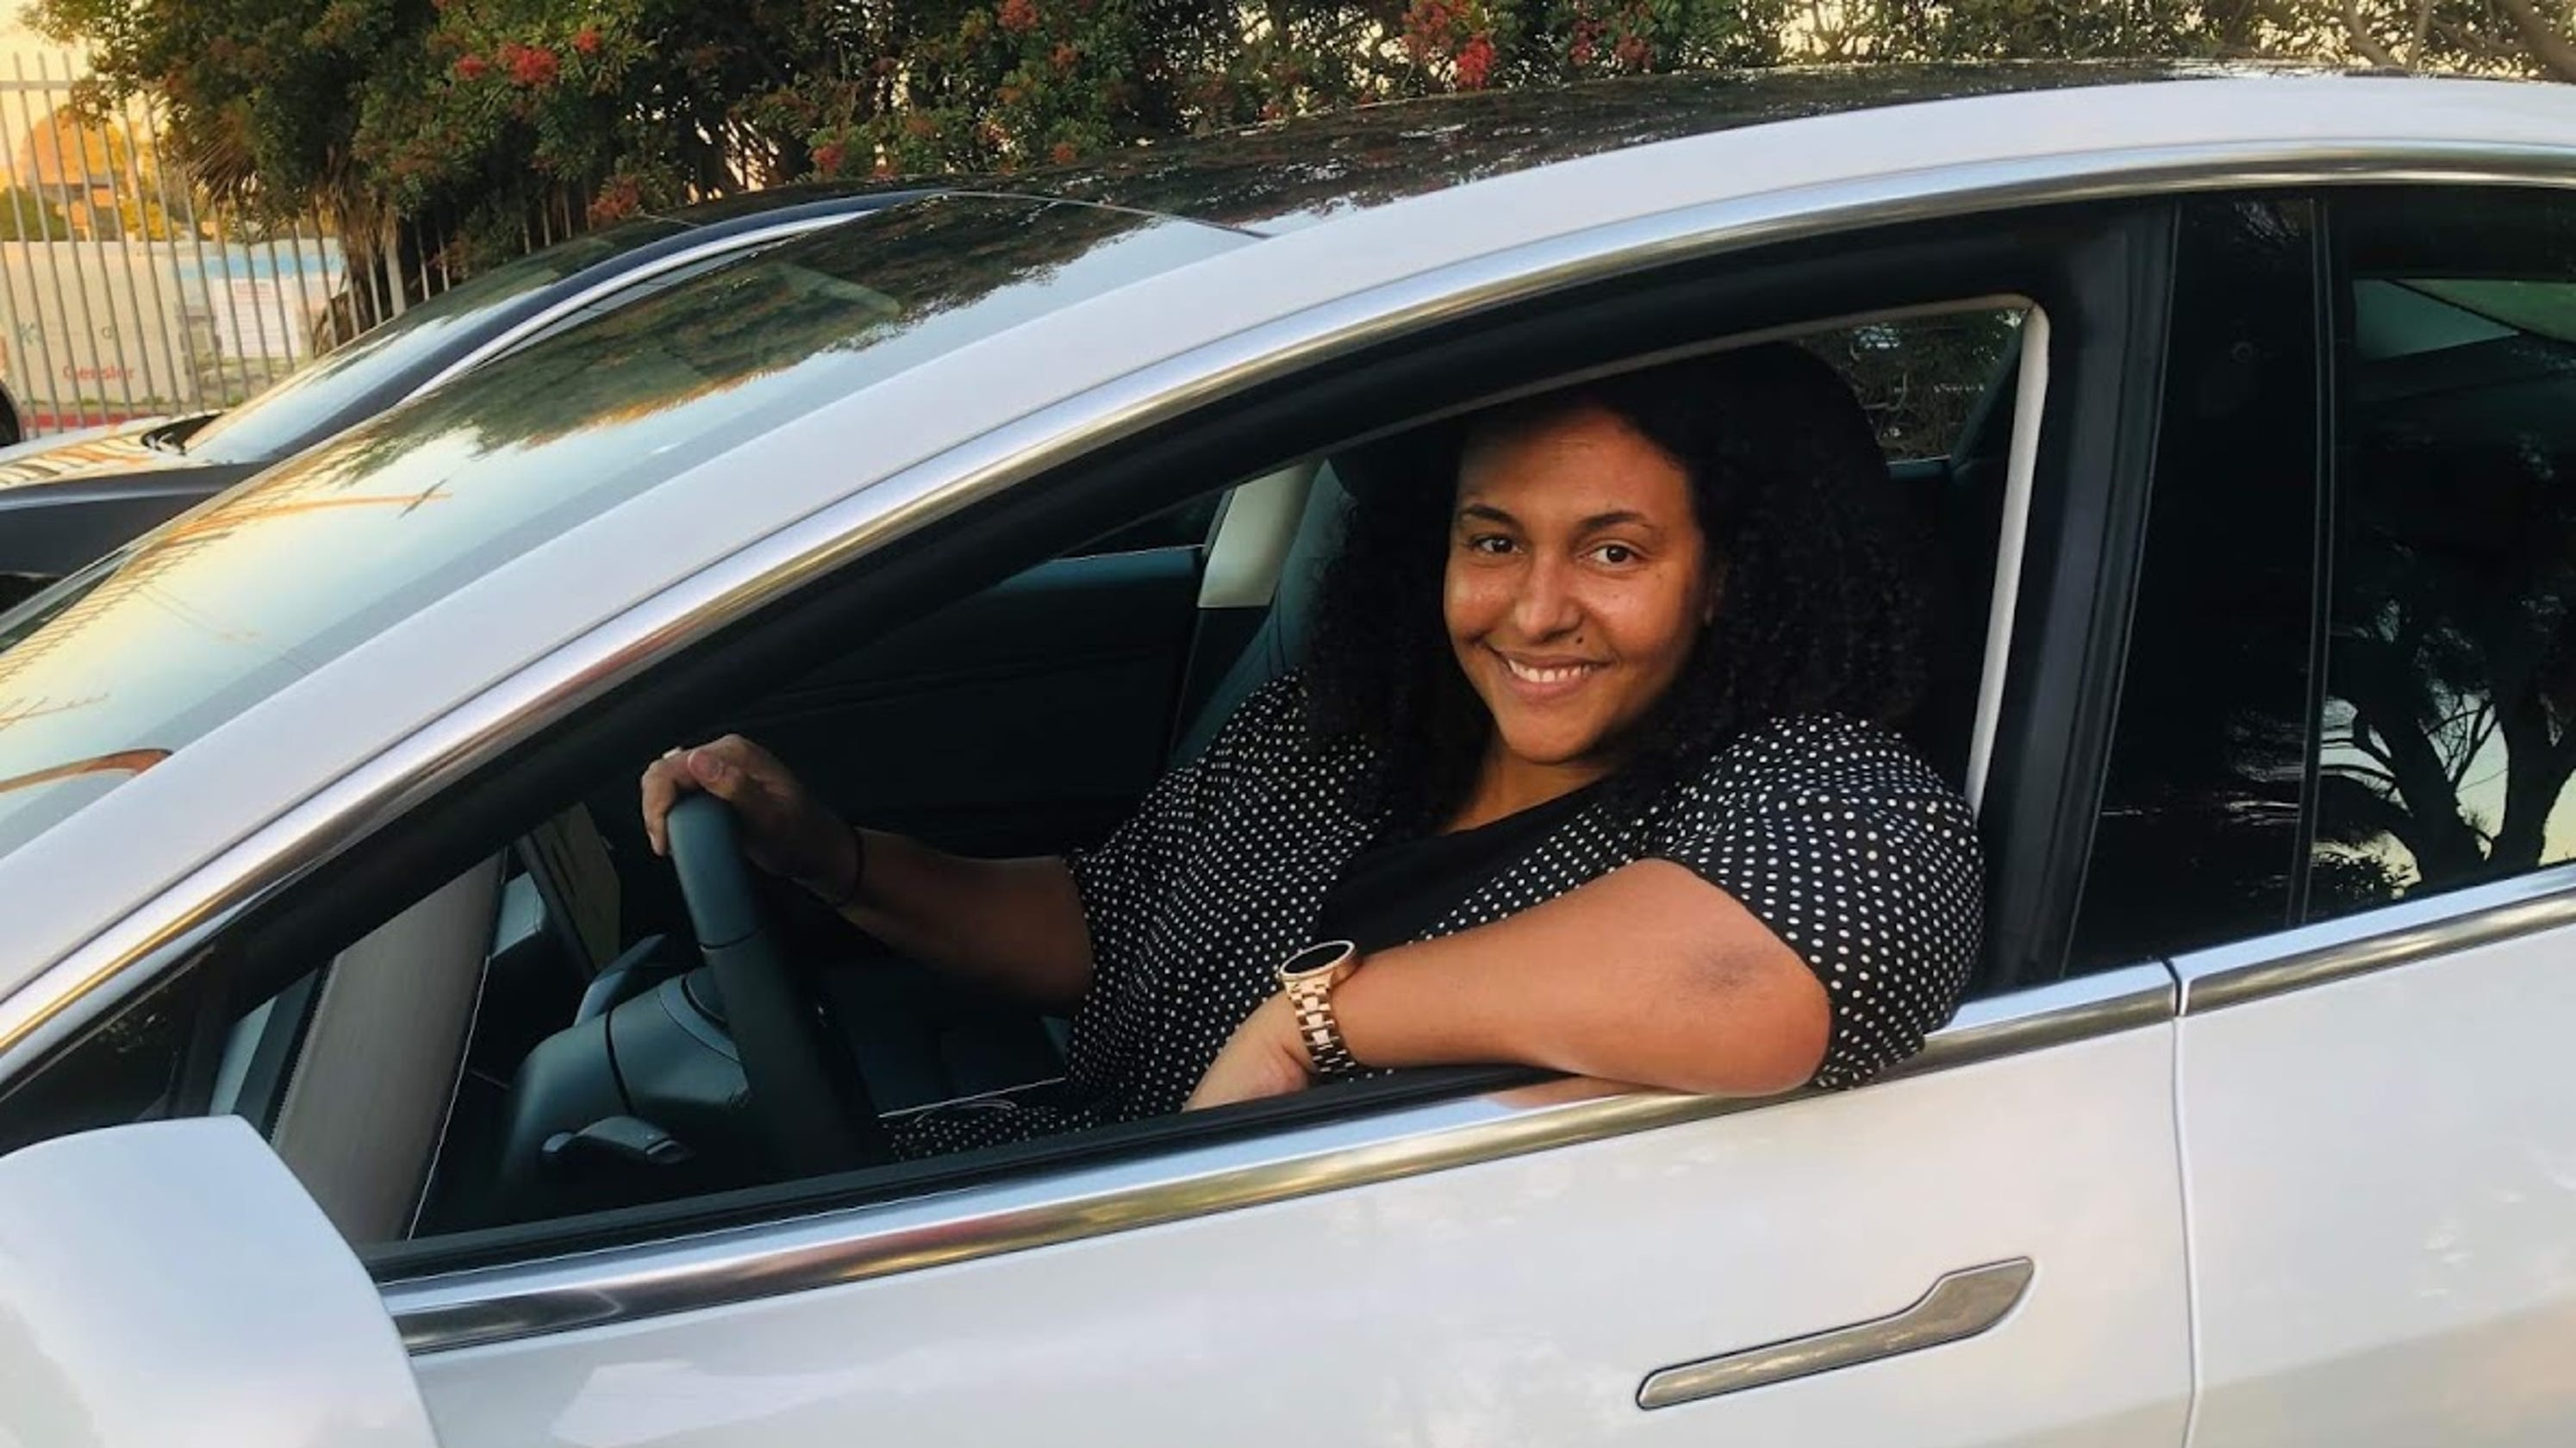 Tesla not just for men: One woman's experience buying Elon Musk's EV